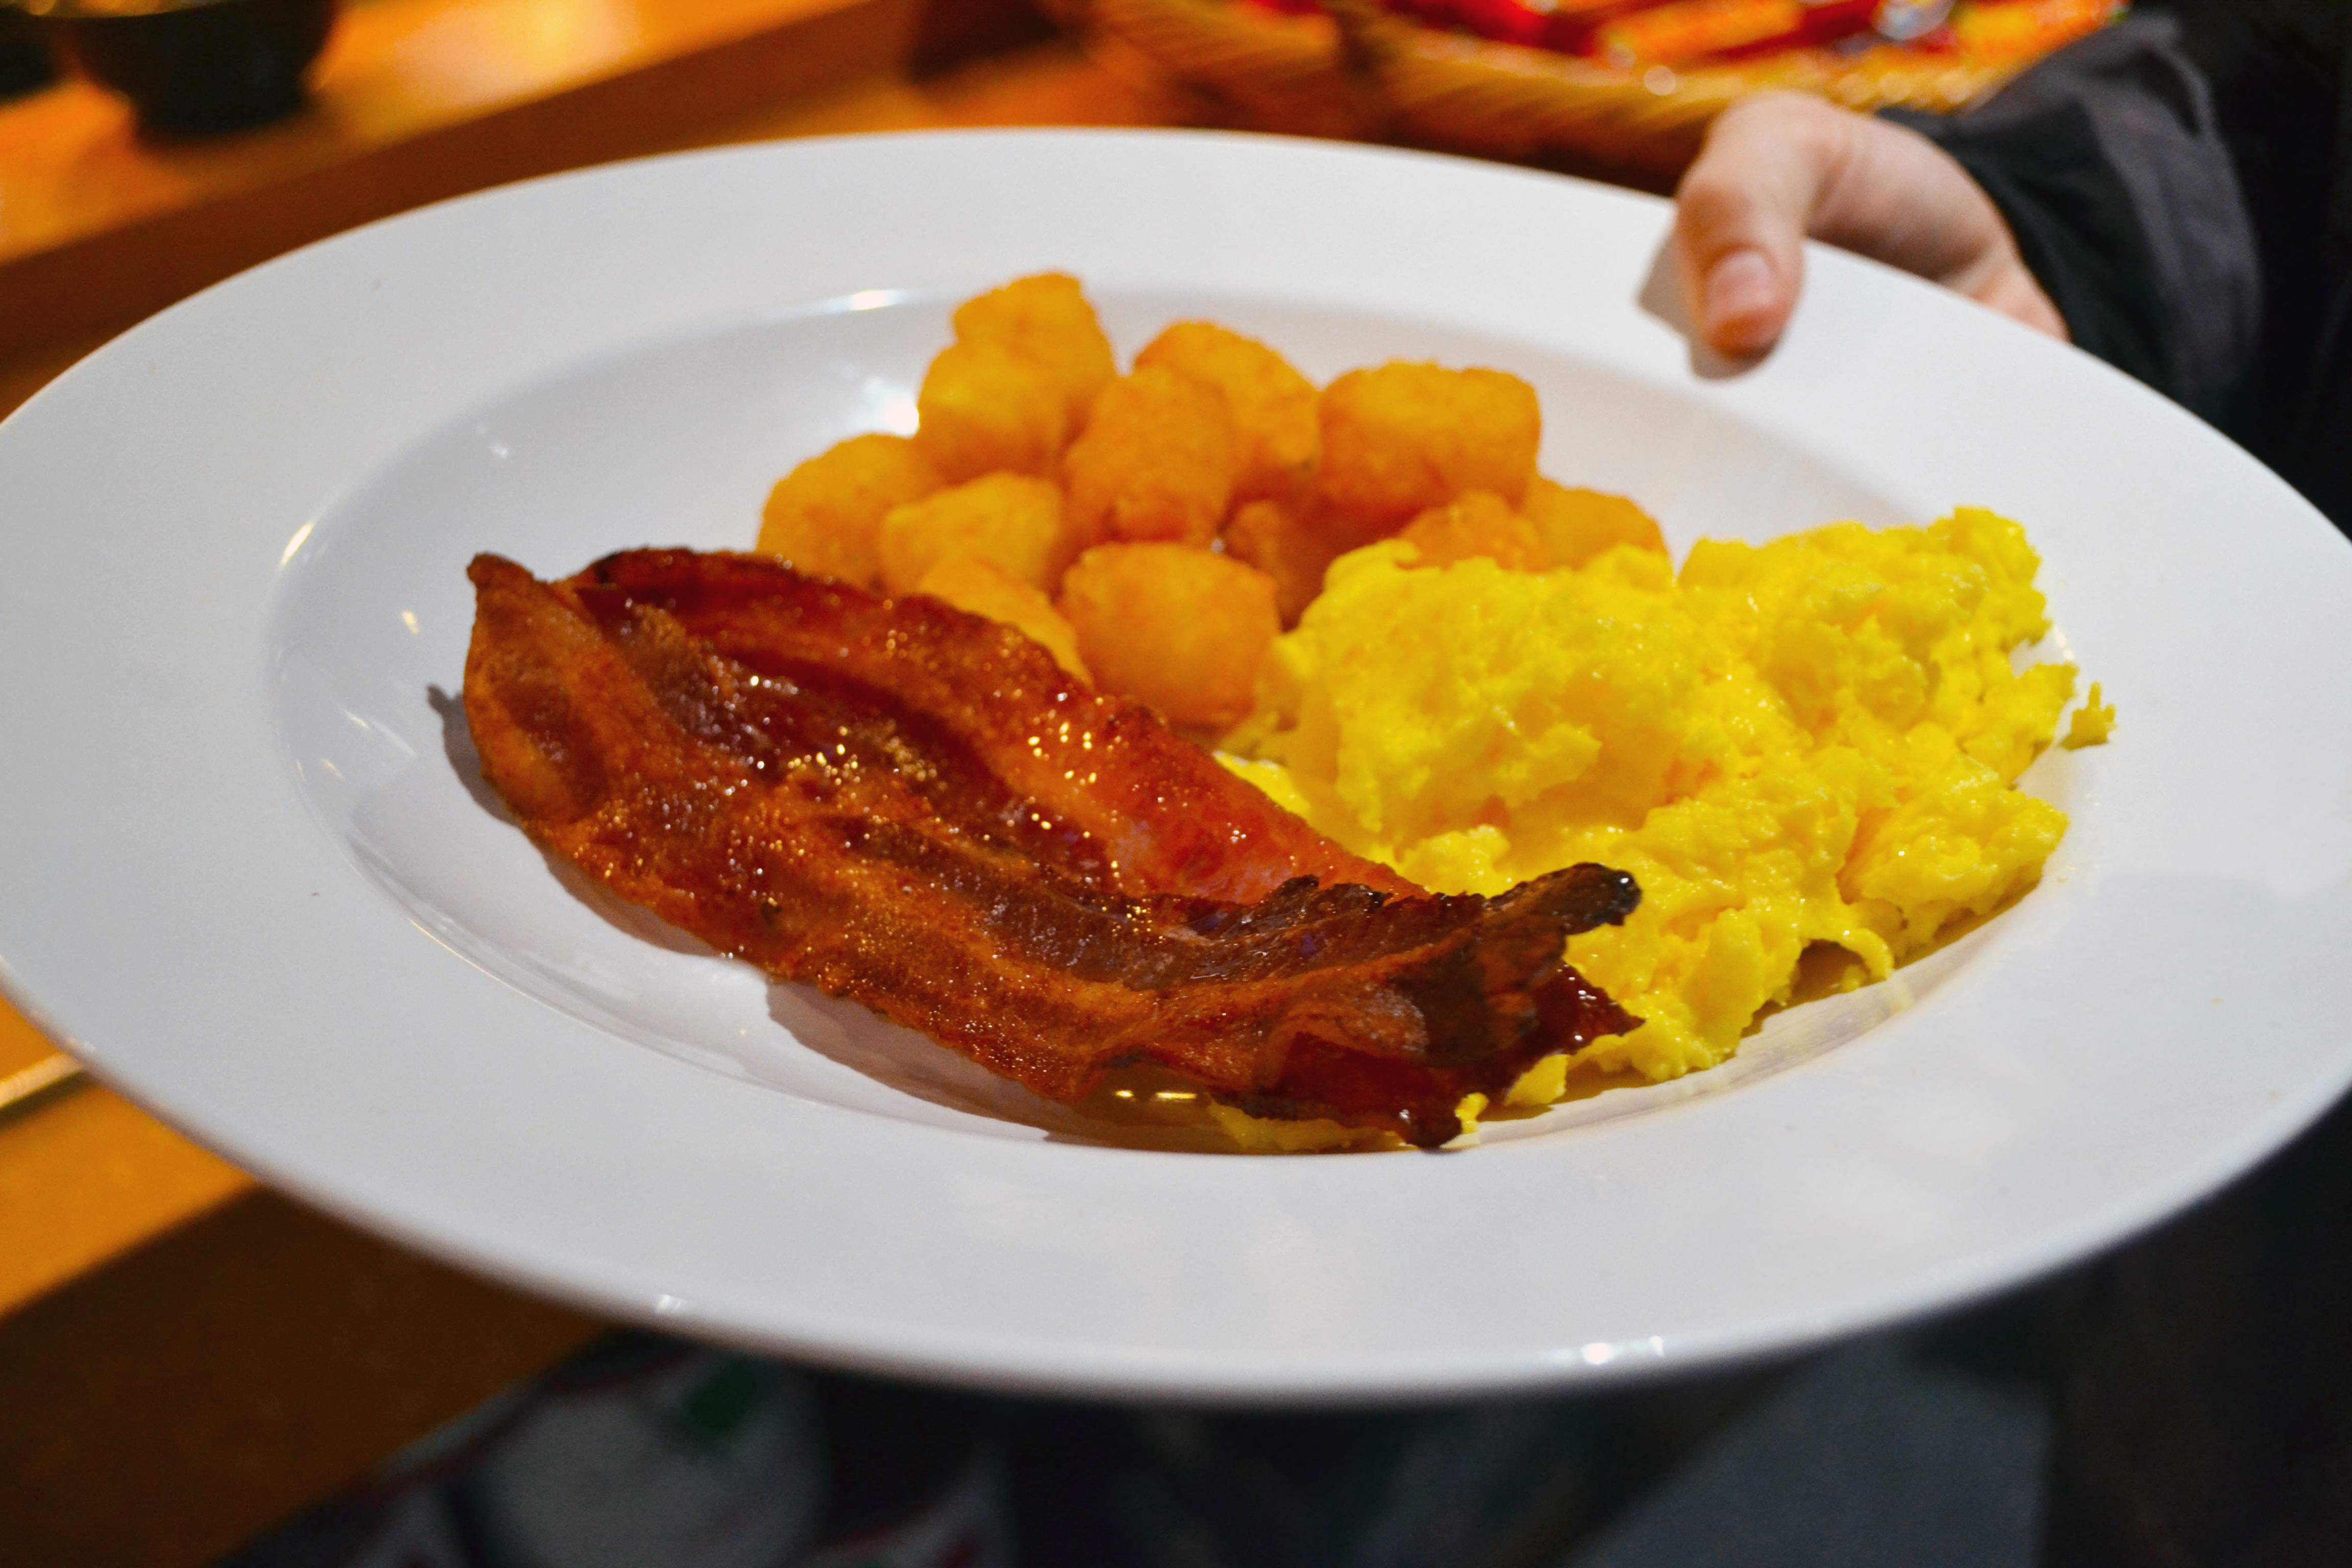 Bacon & Eggs with a side of hash browns